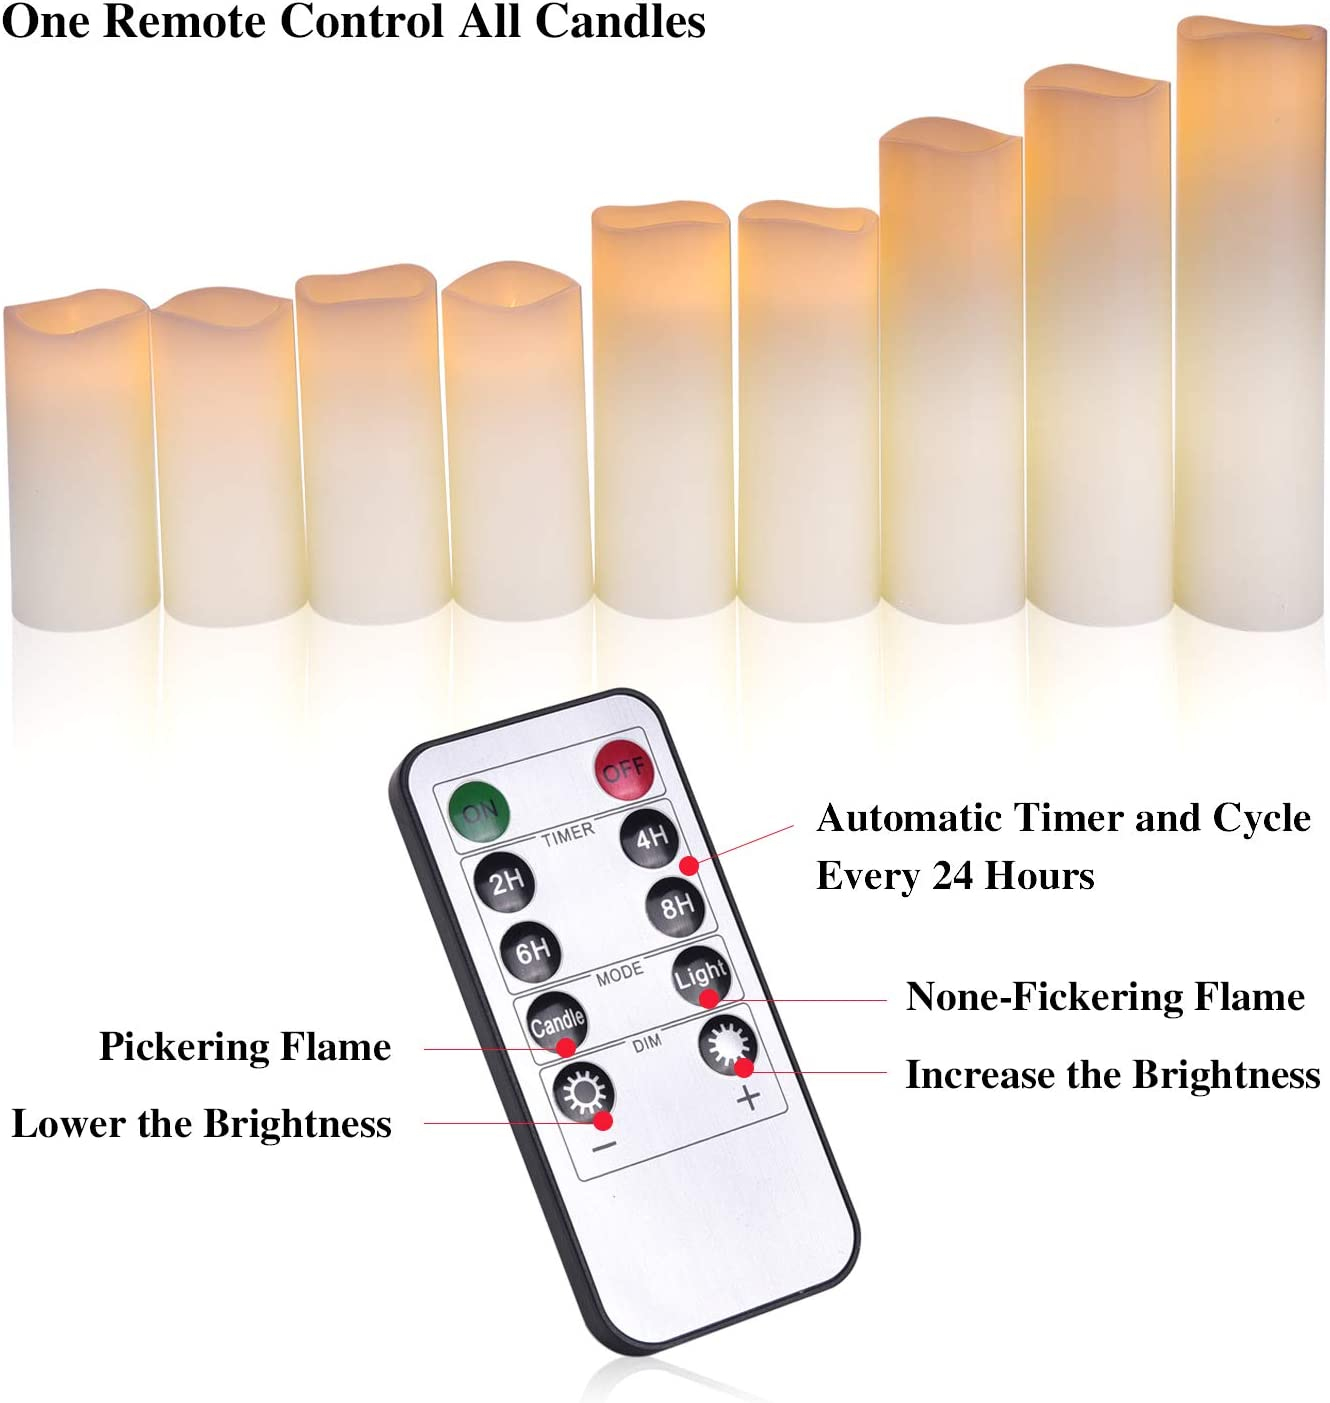 Free Amazon Promo Code 2020 for Flameless Candles LED Lights